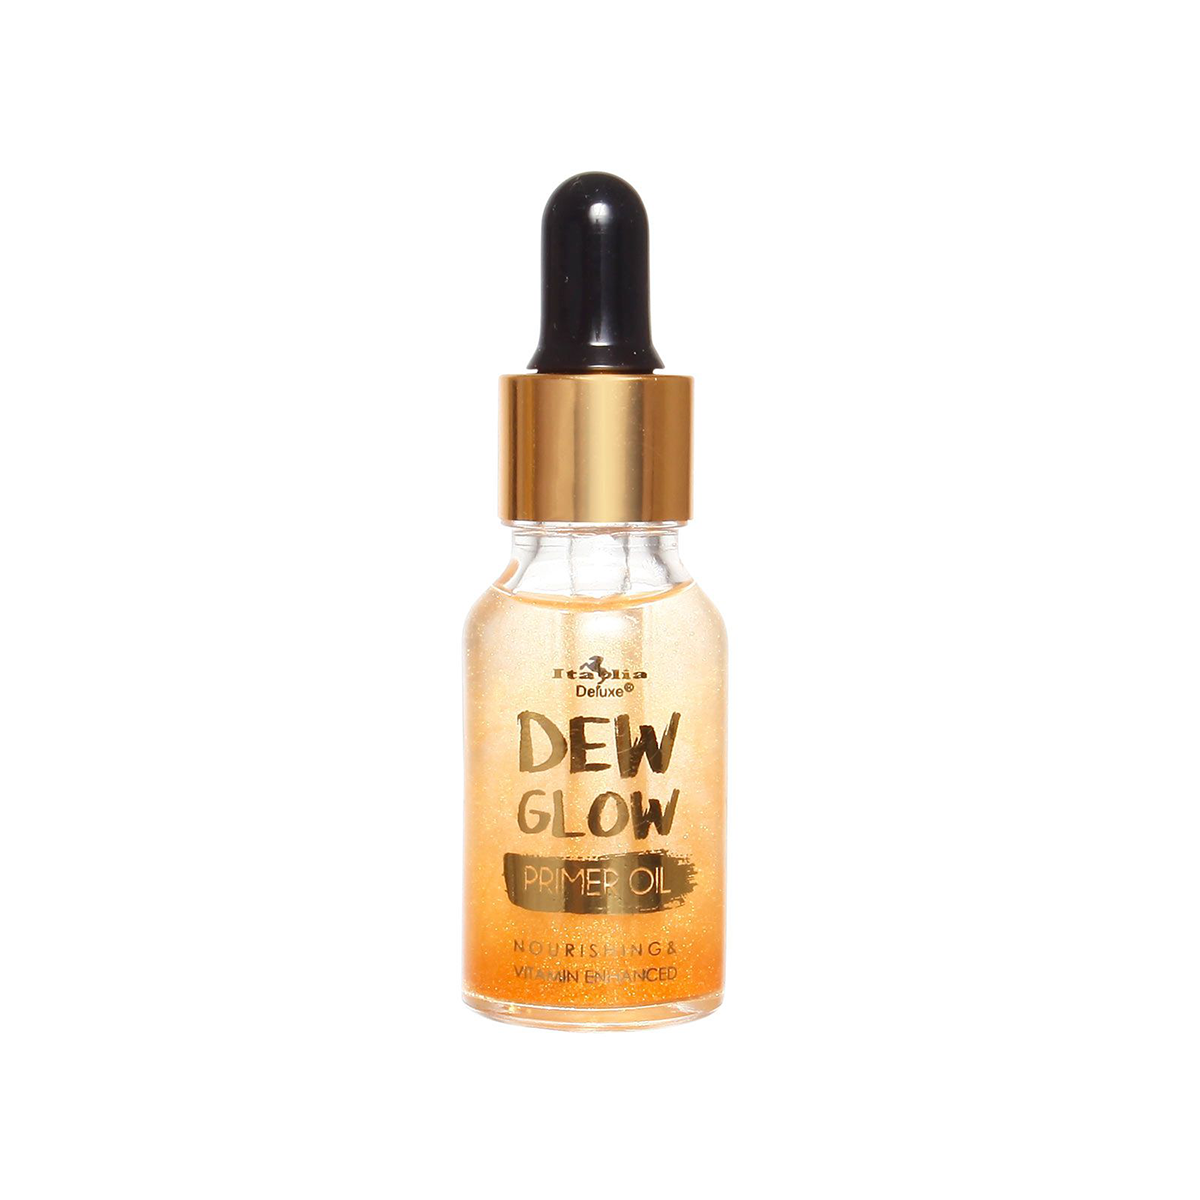 Dew Gold Primer Oil - Nourishing